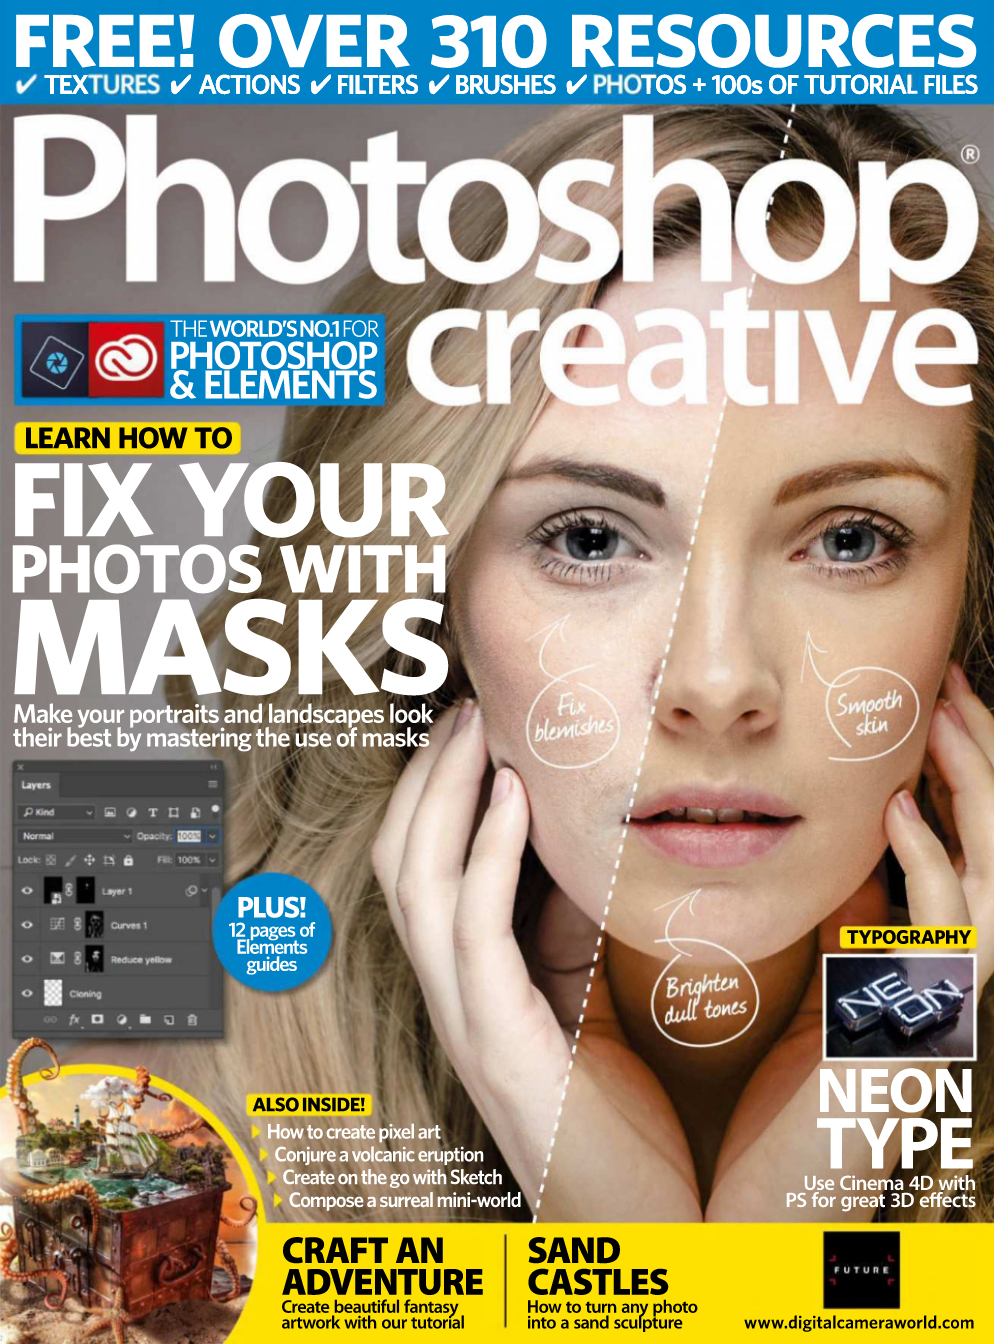 Photoshop Creative magazine - Issue 166 Cover: Use Cinema4d to create Neon type typography.